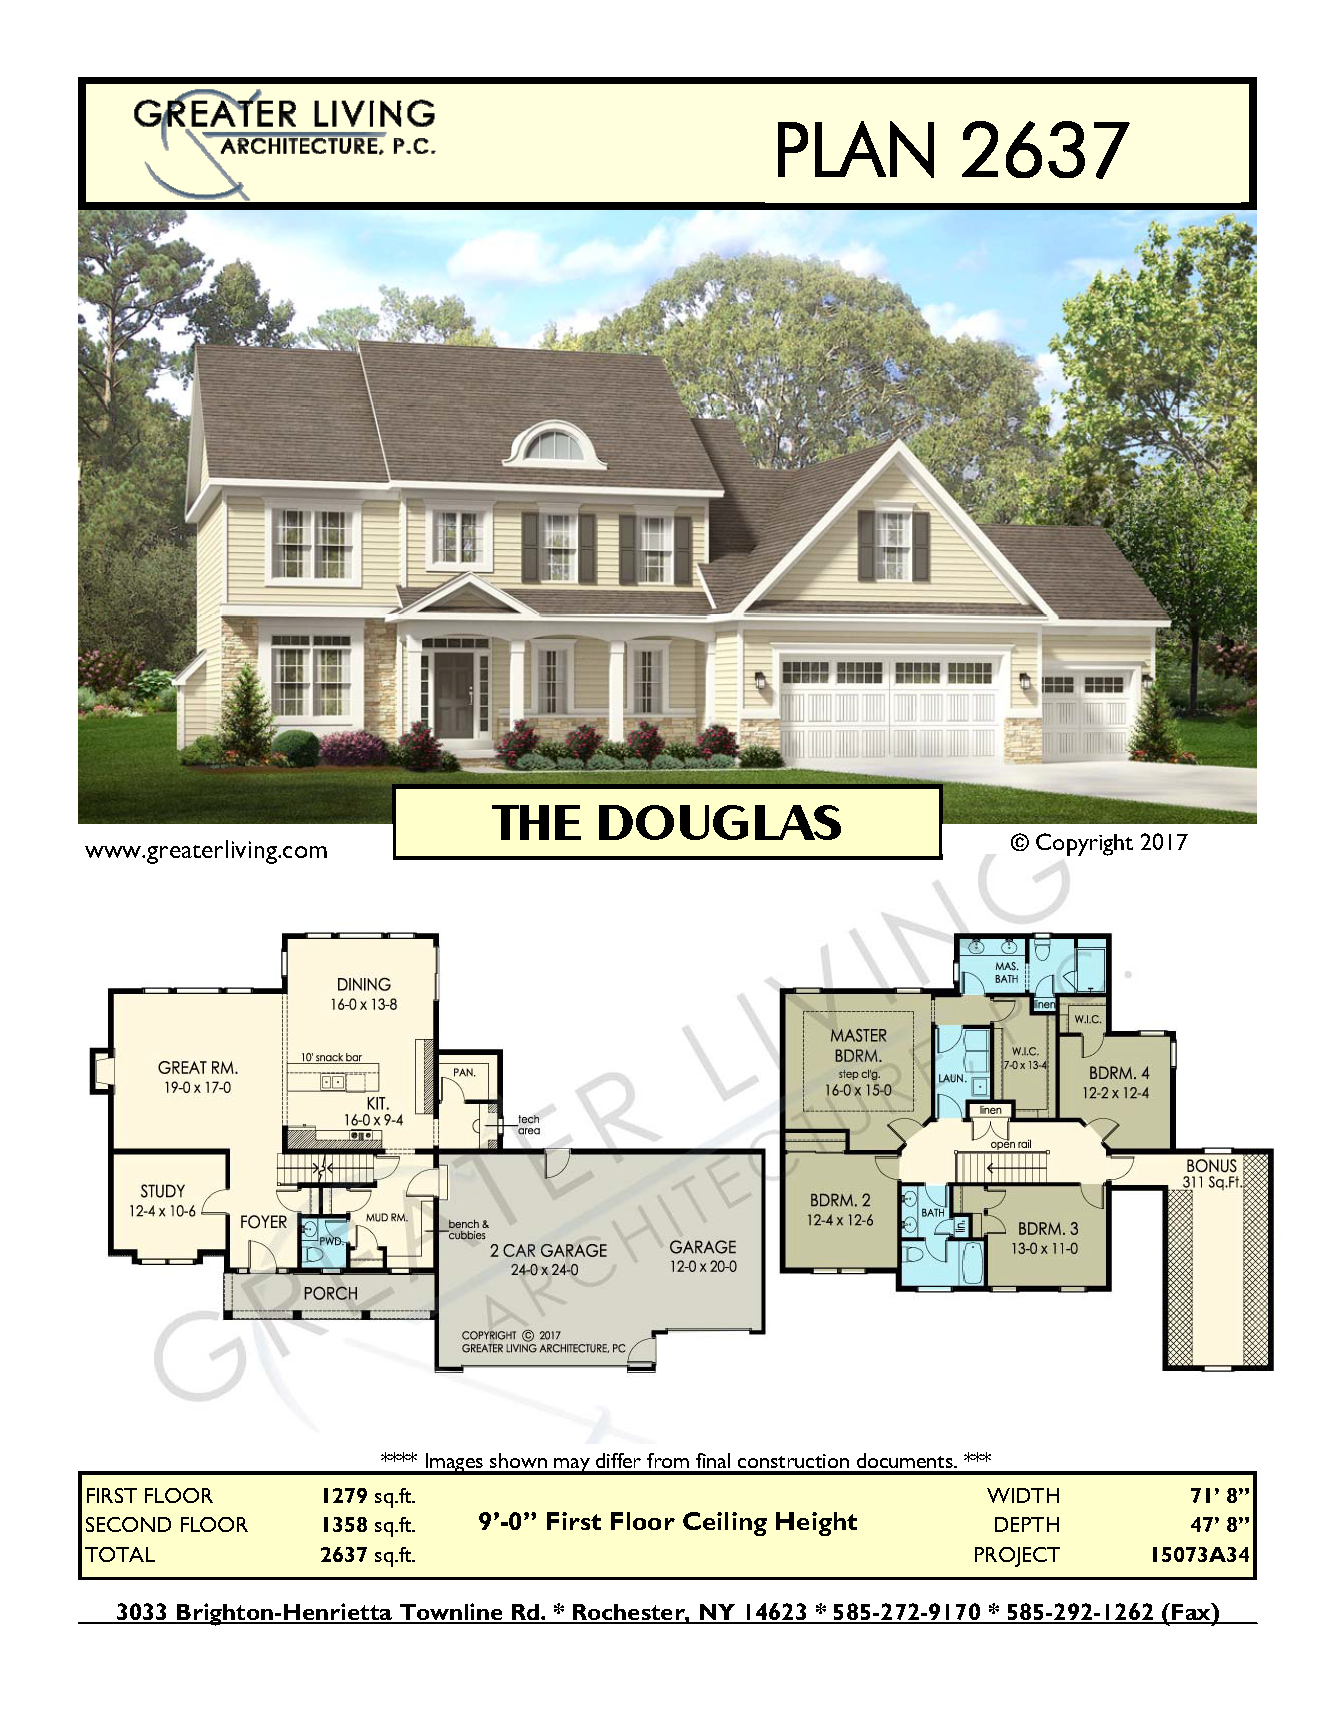 Plan 2637: THE DOUGLAS- Two Story House Plan - Greater Living ...